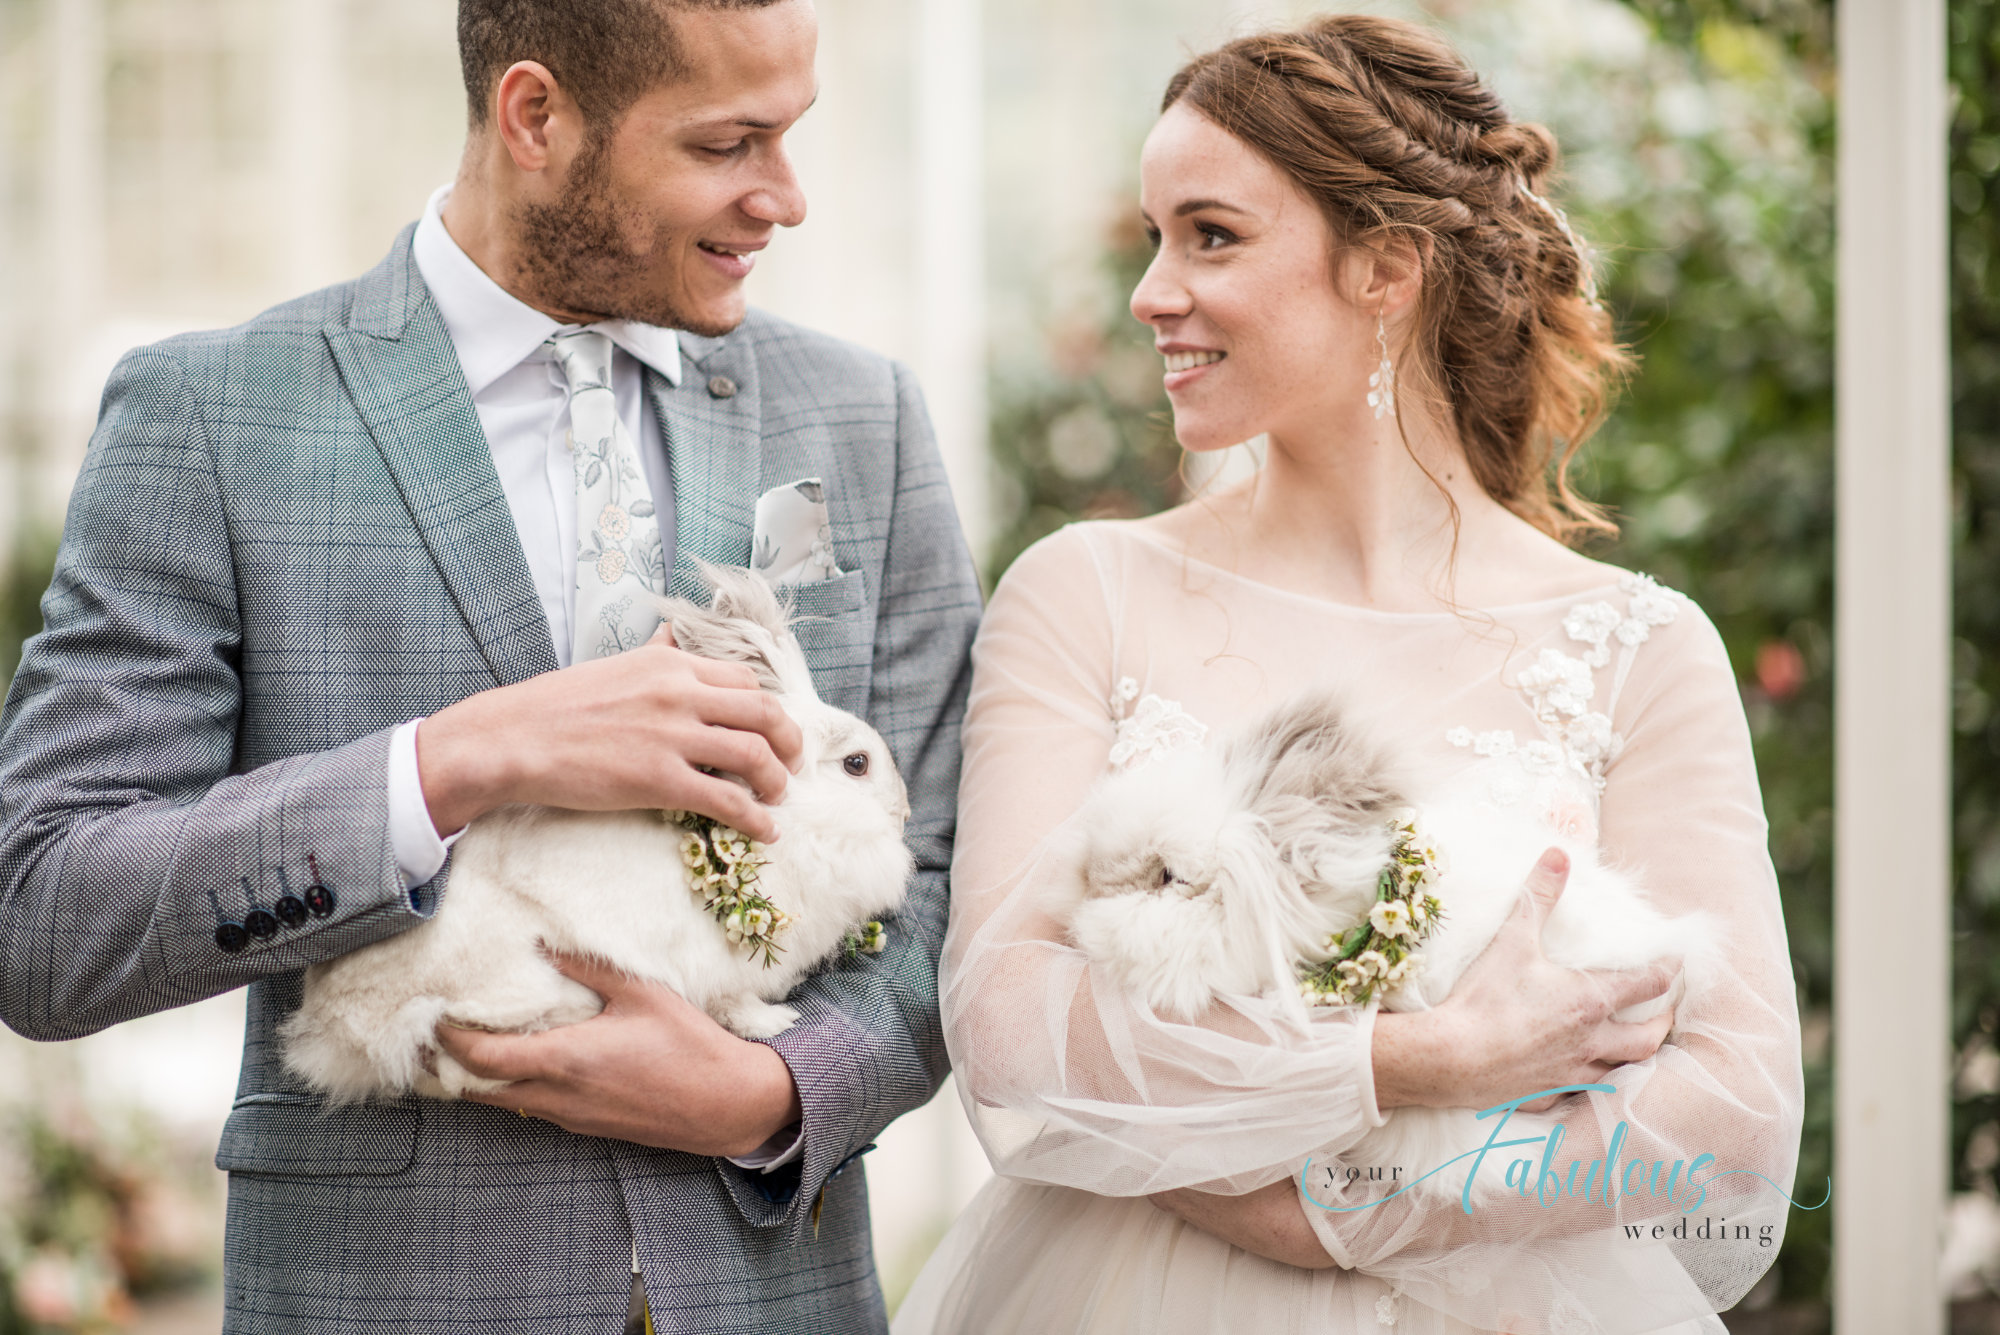 Top Tips For Choosing The Perfect Wedding Suit - Your Fabulous Wedding